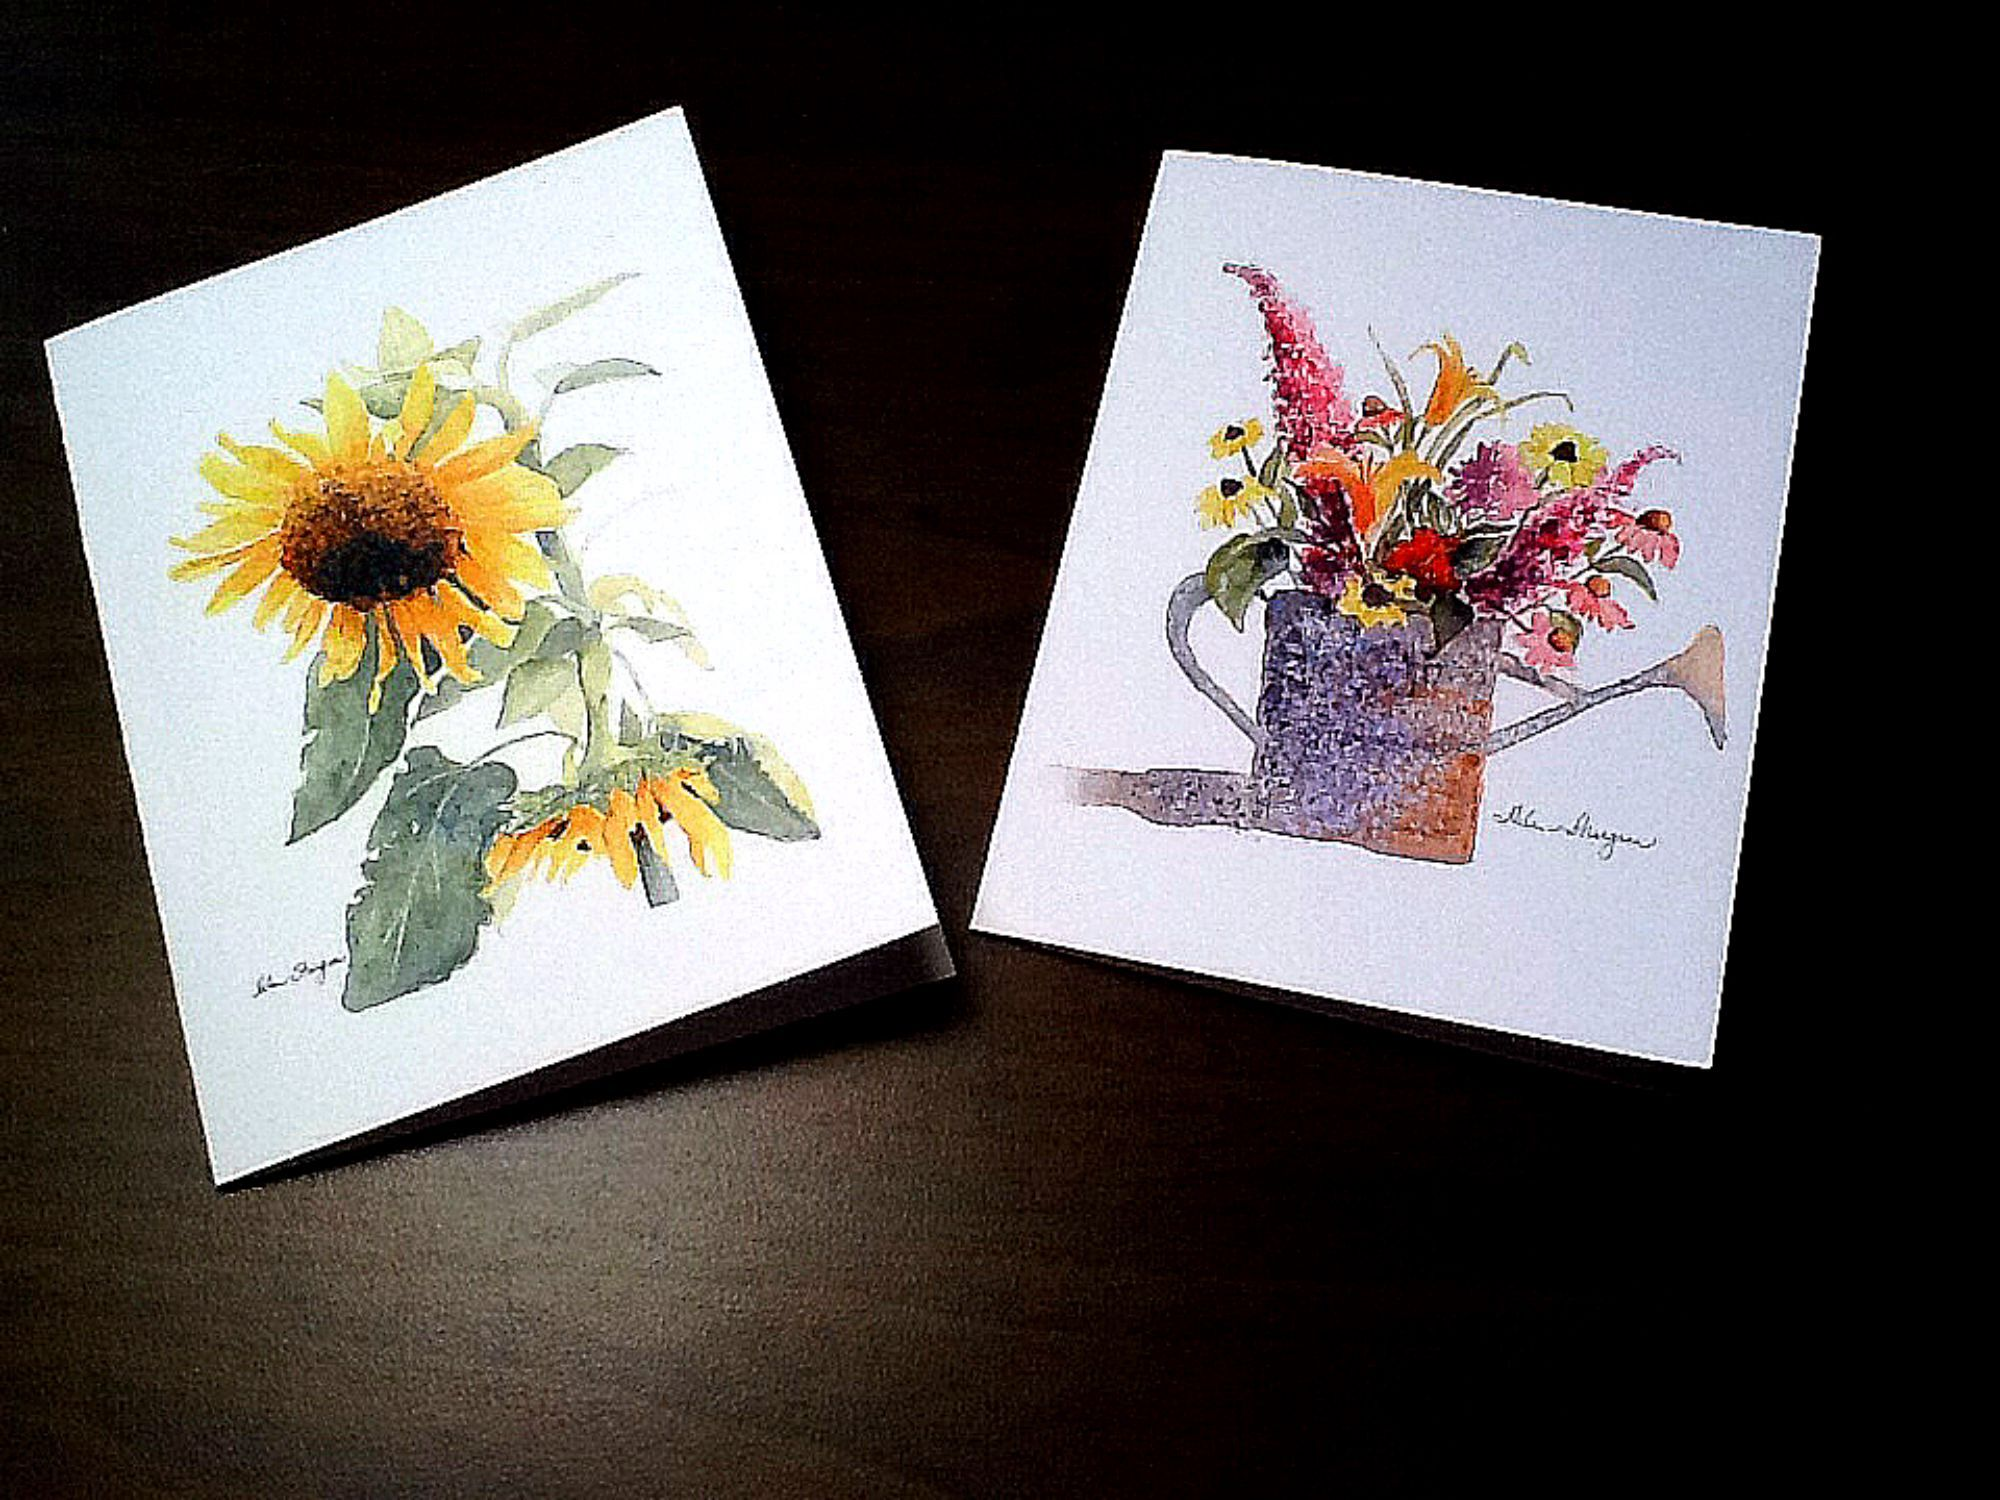 Notecards available for purchase. Watercolorbyhelen@gmail.com